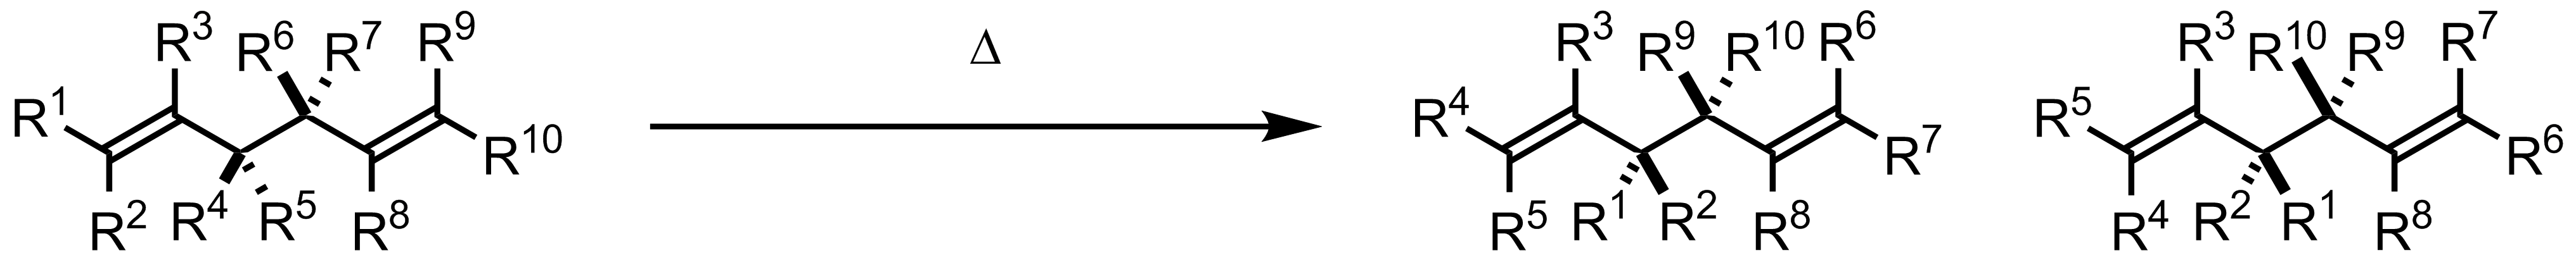 Schematic representation of the Cope Rearrangement.